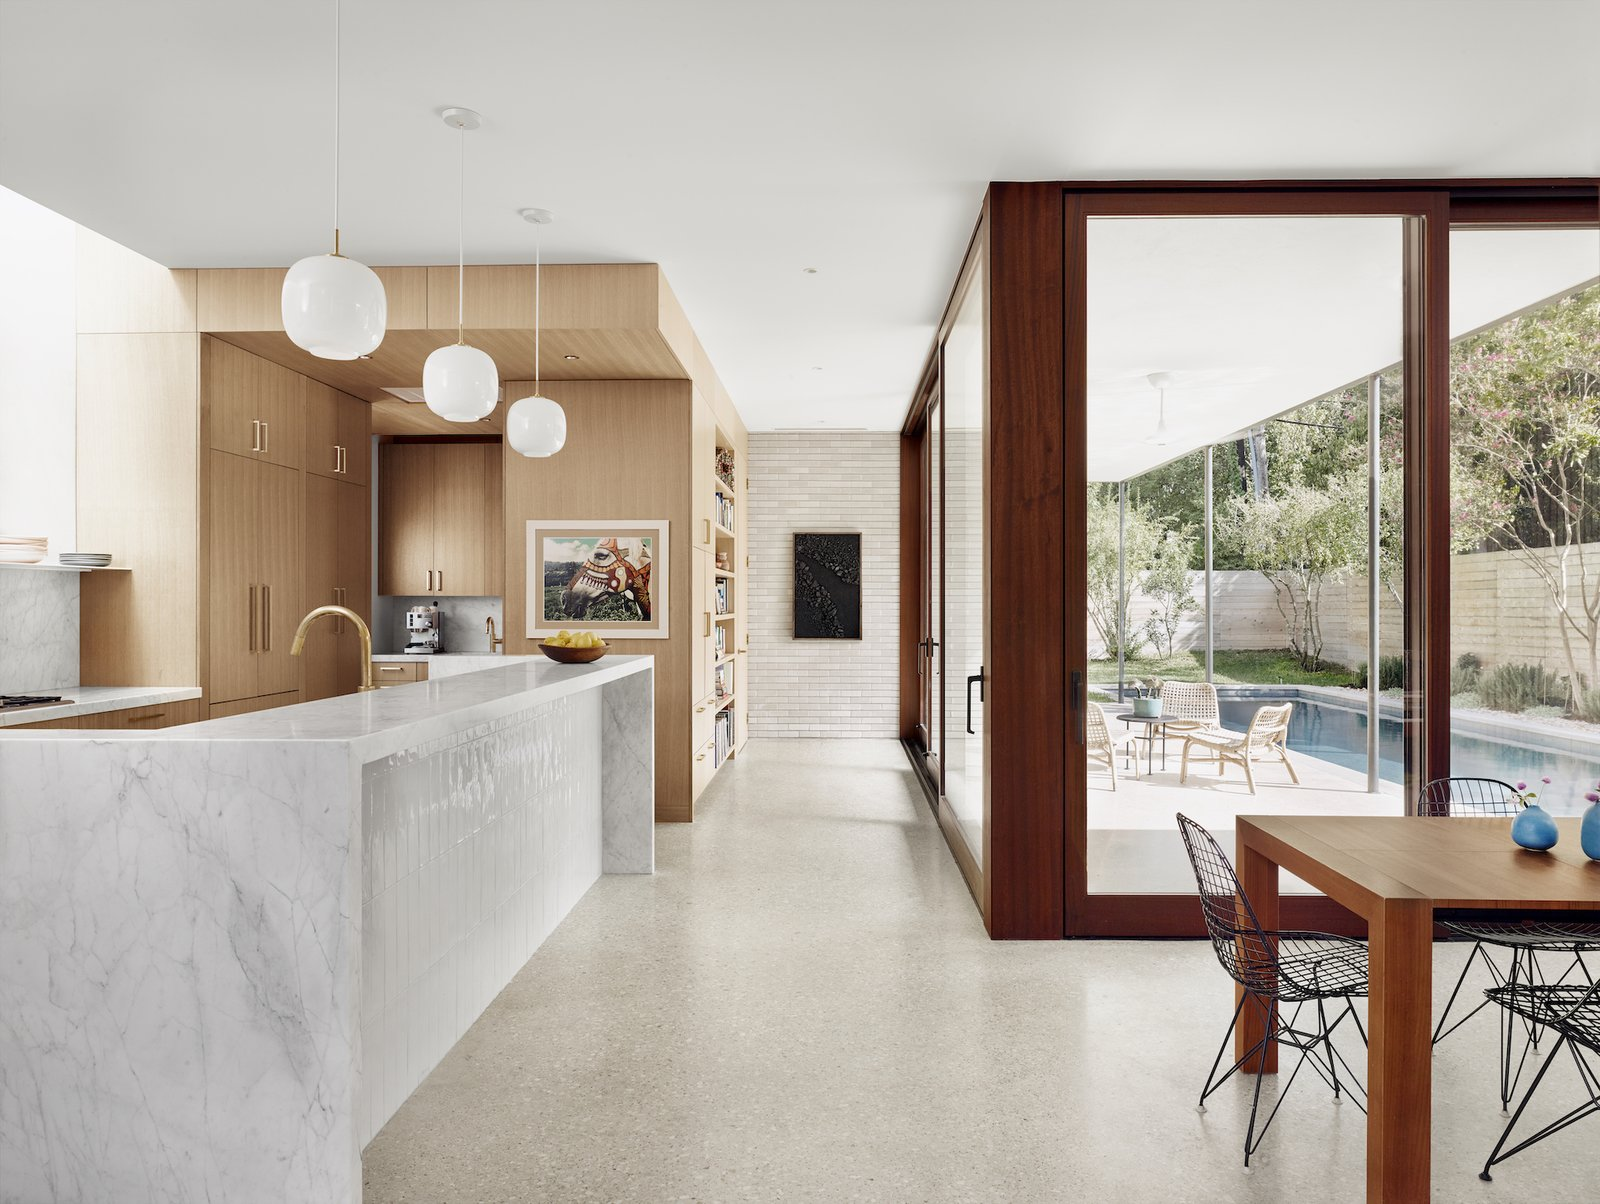 Kitchen and dining area at Hemlock Ave. House by Chioco Design.